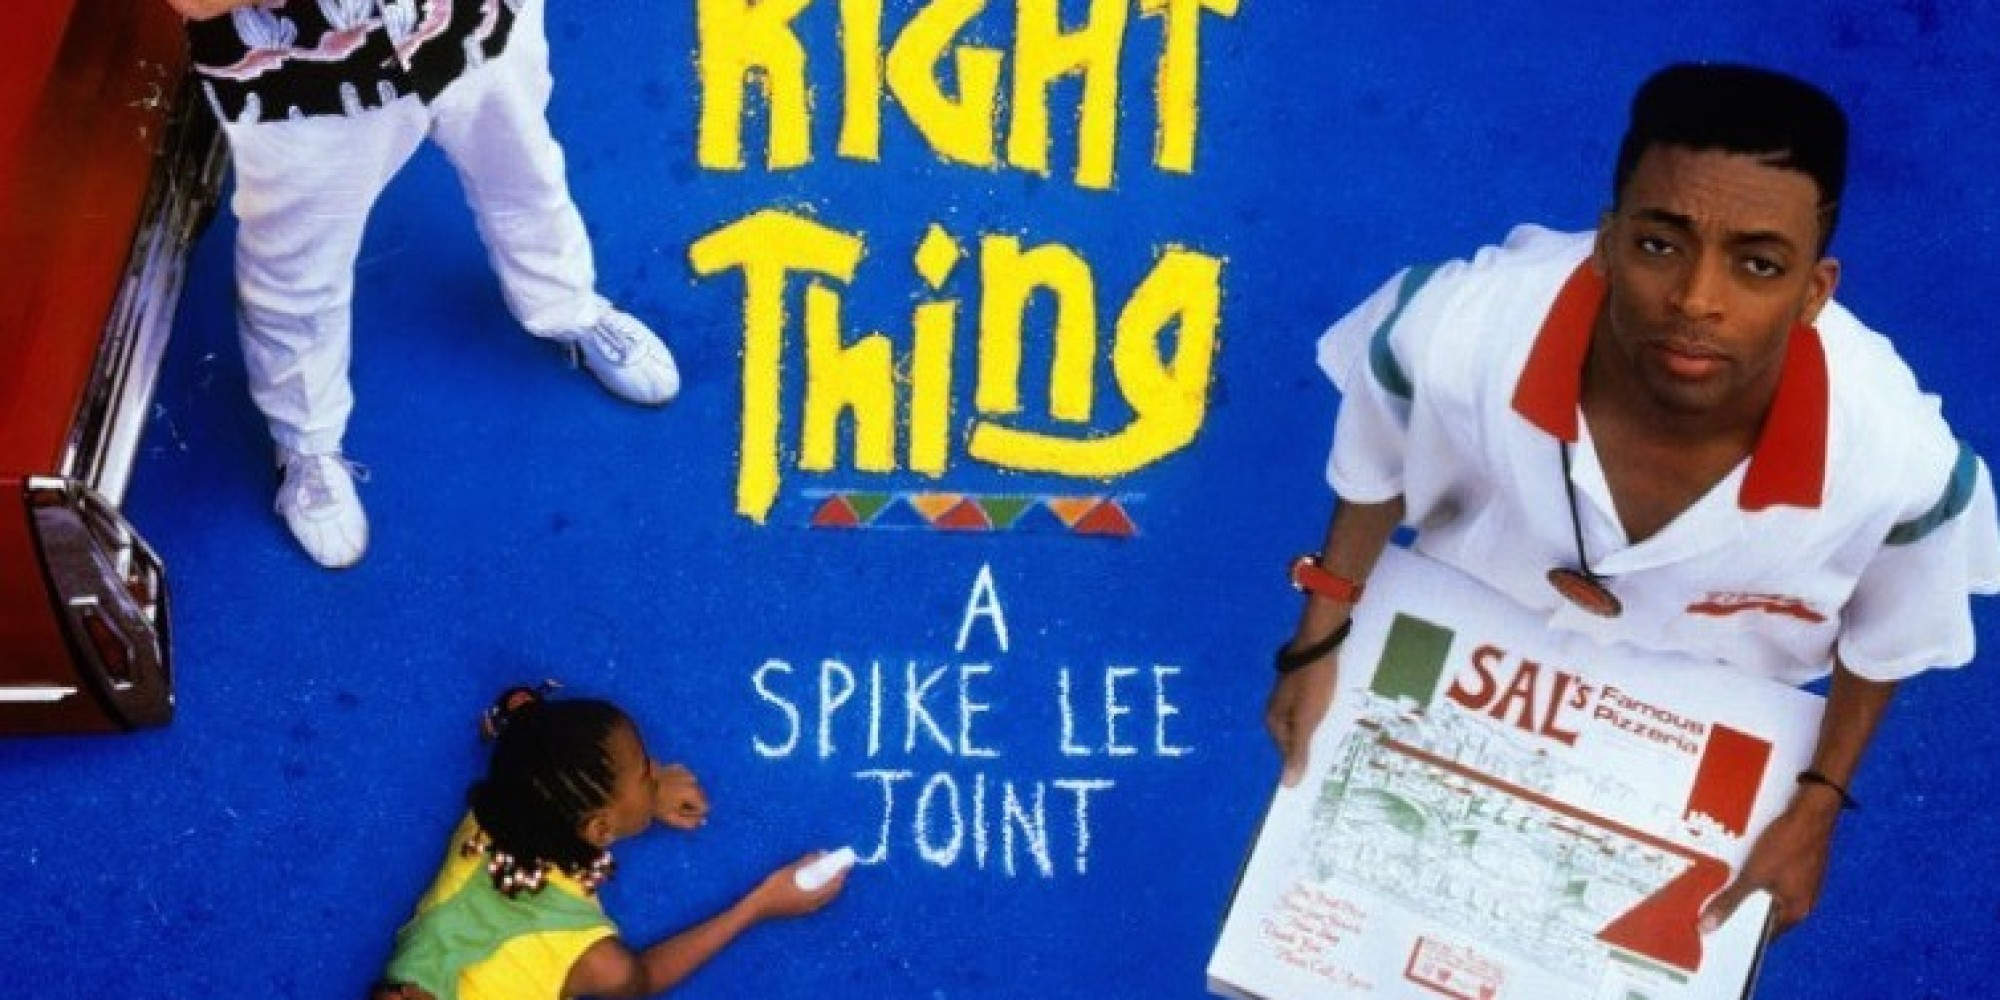 an analysis of the movie do the right thing by spike lee An analysis of an often overlooked part of mise en scene, the use of props, in spike lee's timeless classic, do the right thing.